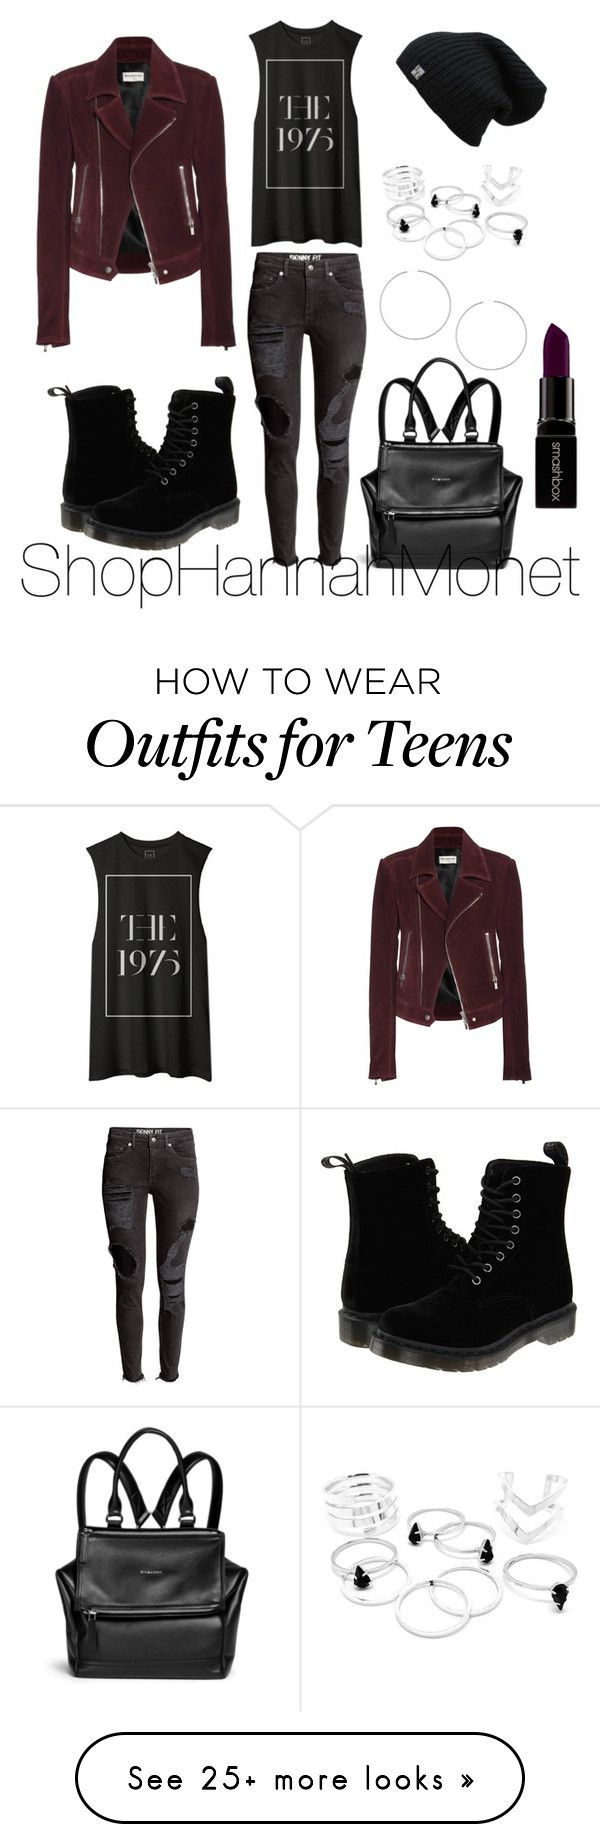 """""""90's Grunge"""" by shophannahmonet-1 on Polyvore featuring Dr. Martens, Balenciaga, Topshop, Givenchy, Smashbox, women's clothing, women, female, woman and misses"""